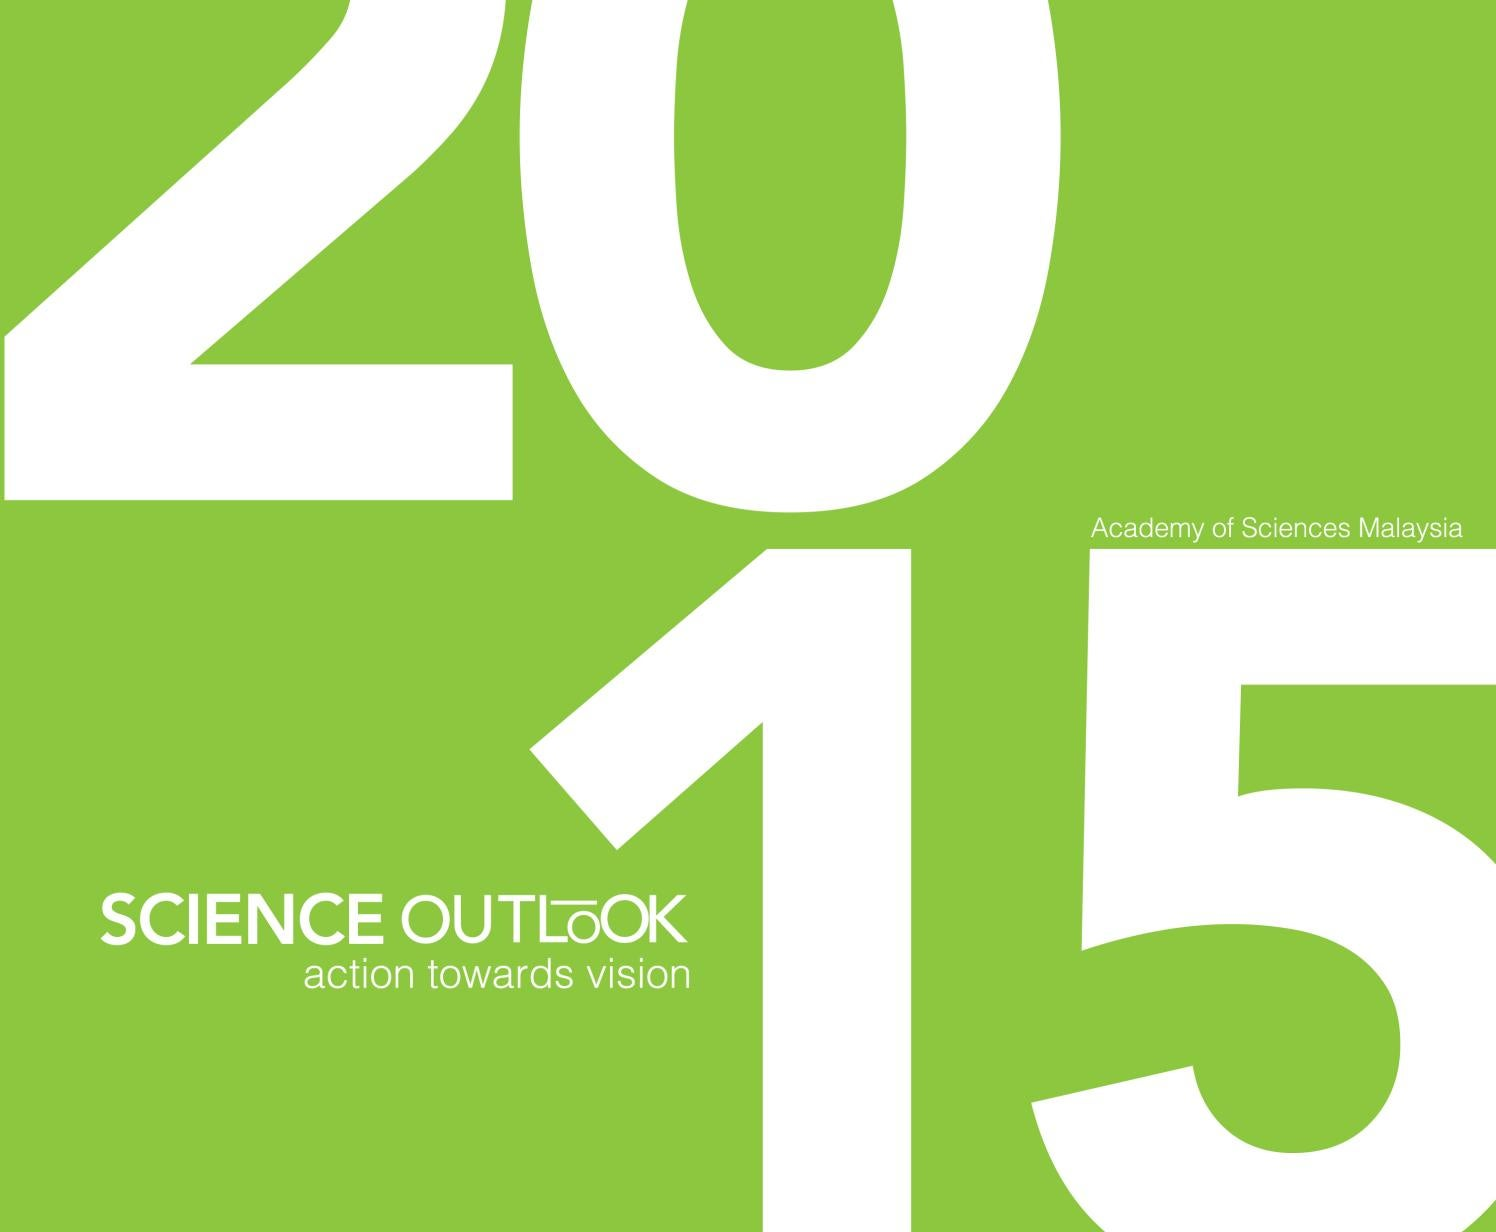 Science Outlook Report 2015 By Academy Of Sciences Malaysia Issuu Bike Tool 15 In 1 With Chain Cutter United Hijau